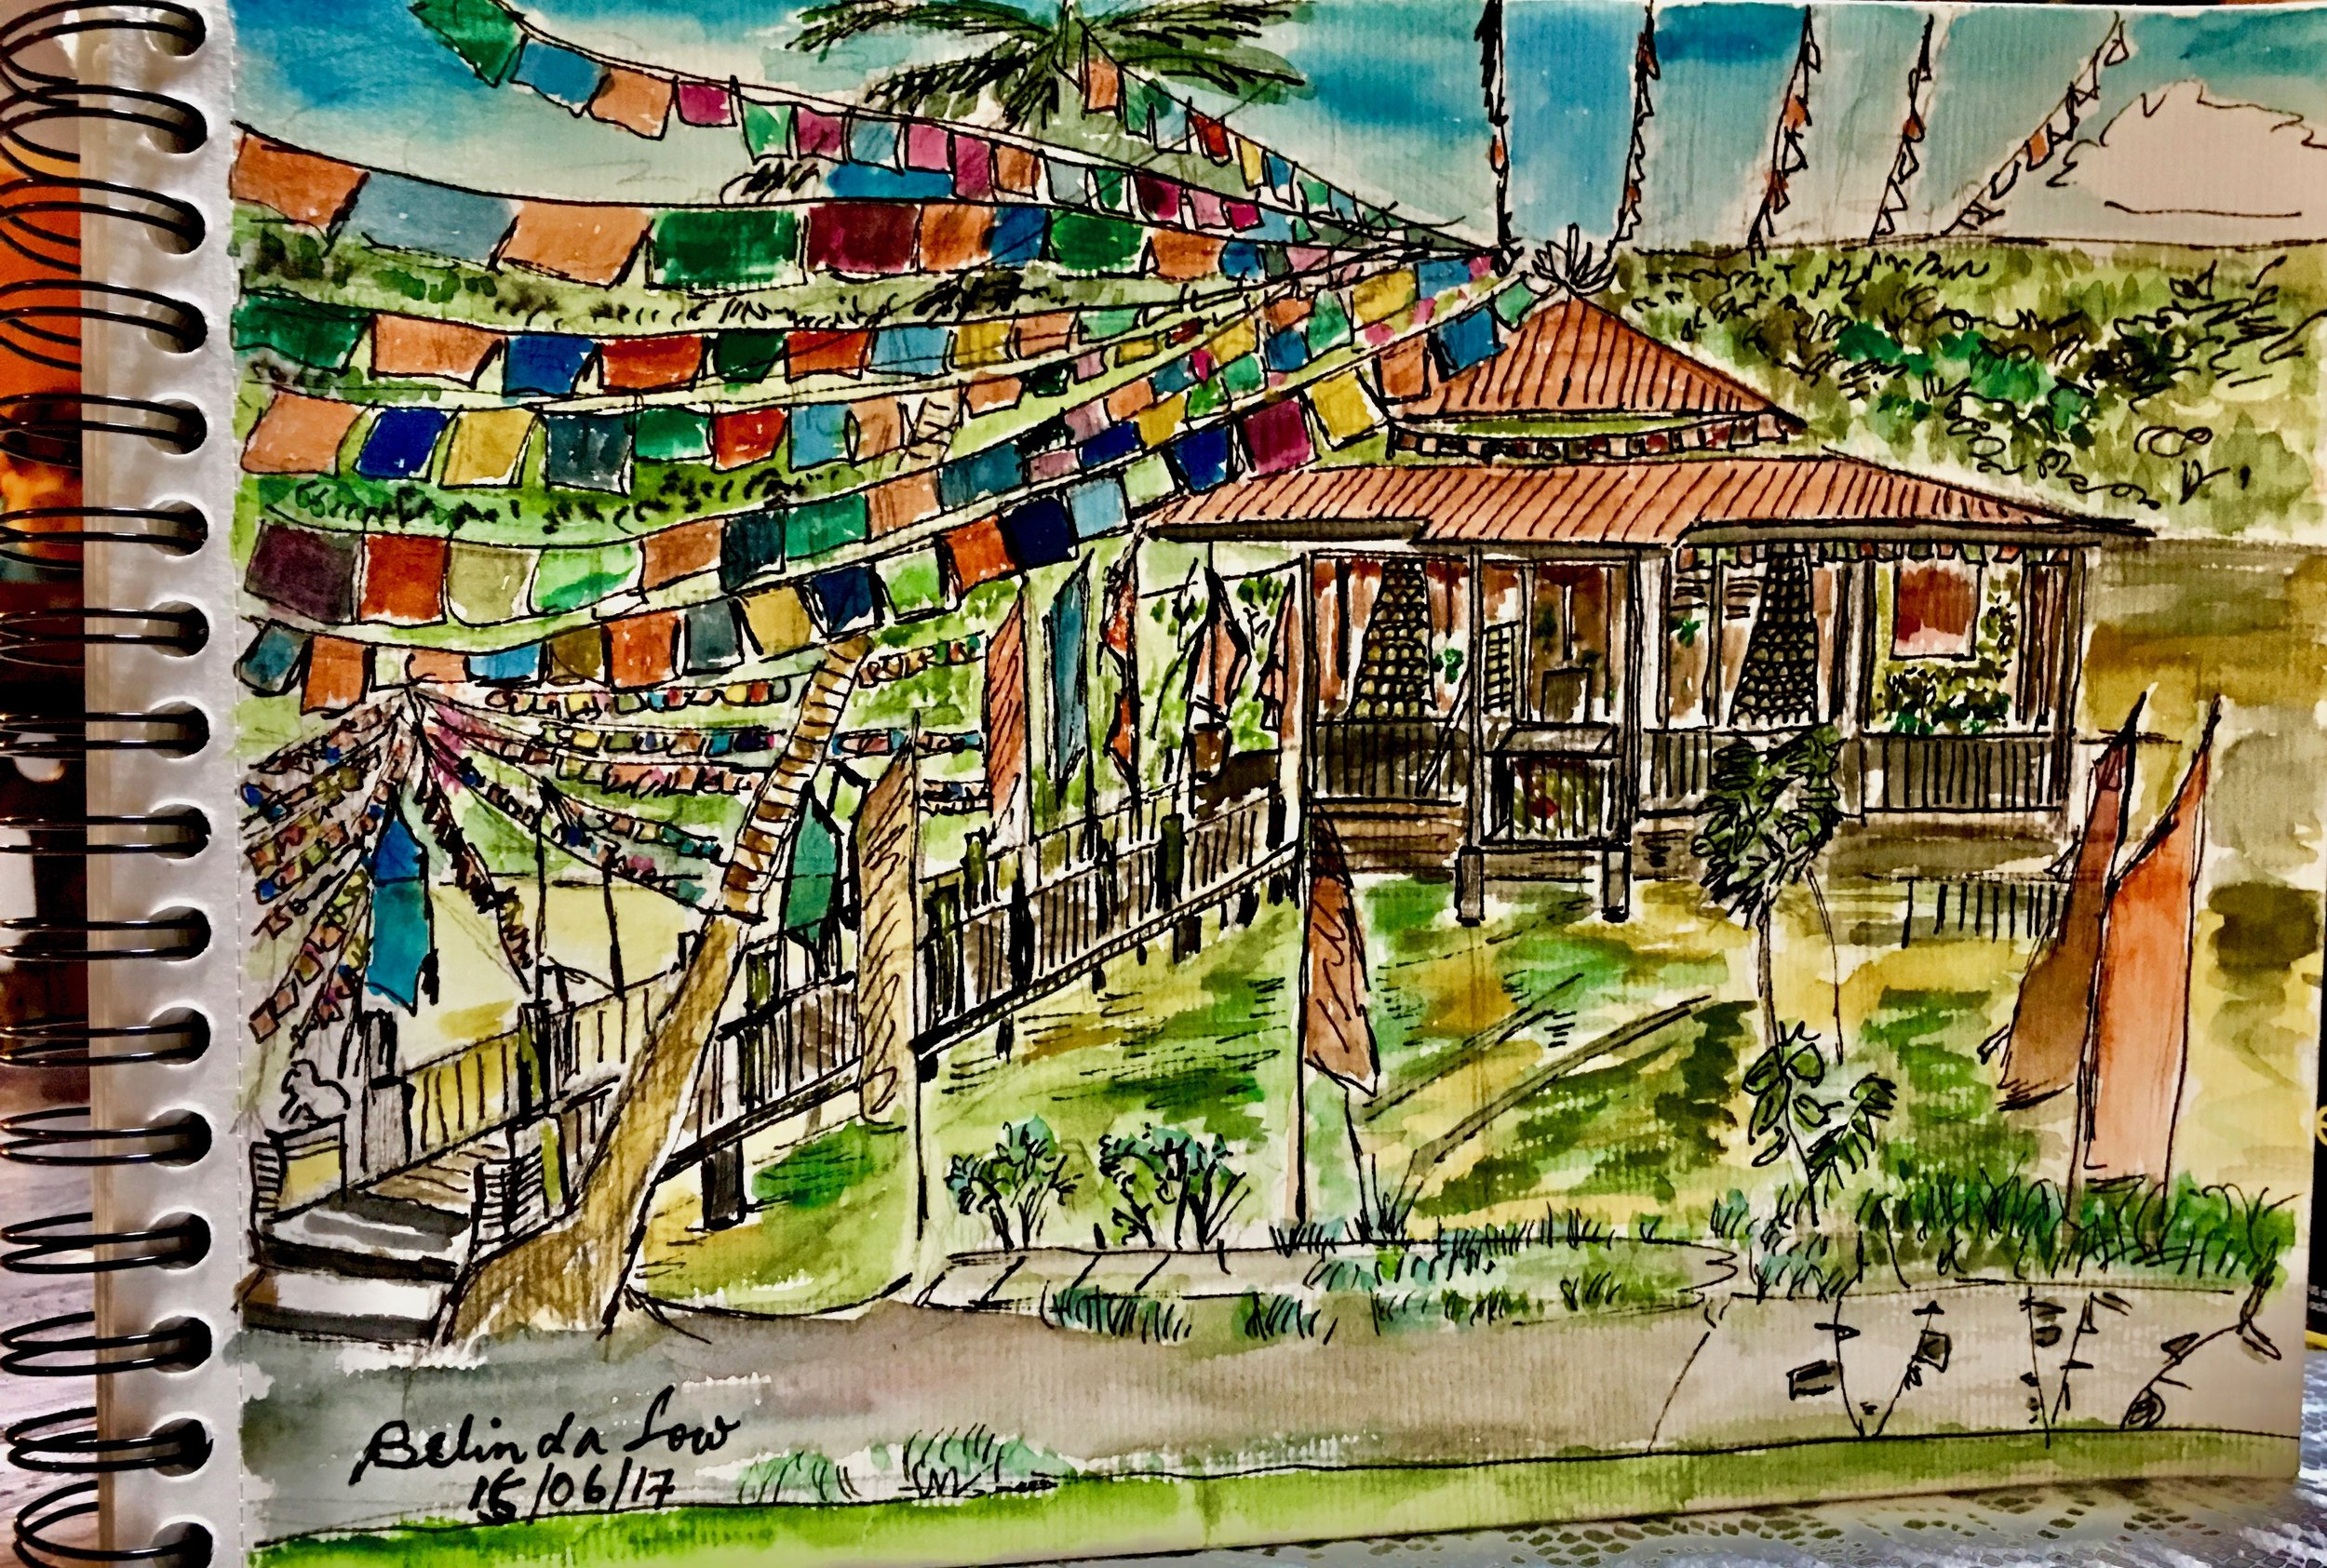 Another sketch this time of the temple which is not far from the house.  You won't notice it till you walk or cycle right in.  The flags add color to the place and it was very quiet on a weekday.  Thats the beauty and lure of Ubin - once you go there, you want to return...